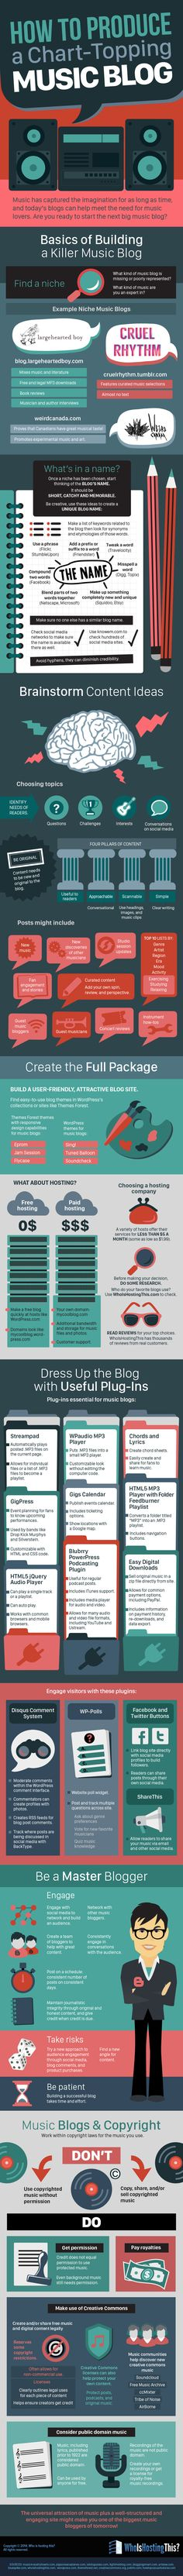 How to Produce a Chart-Topping Music Blog #infographic #HowTo #Music #Blog #Blogging